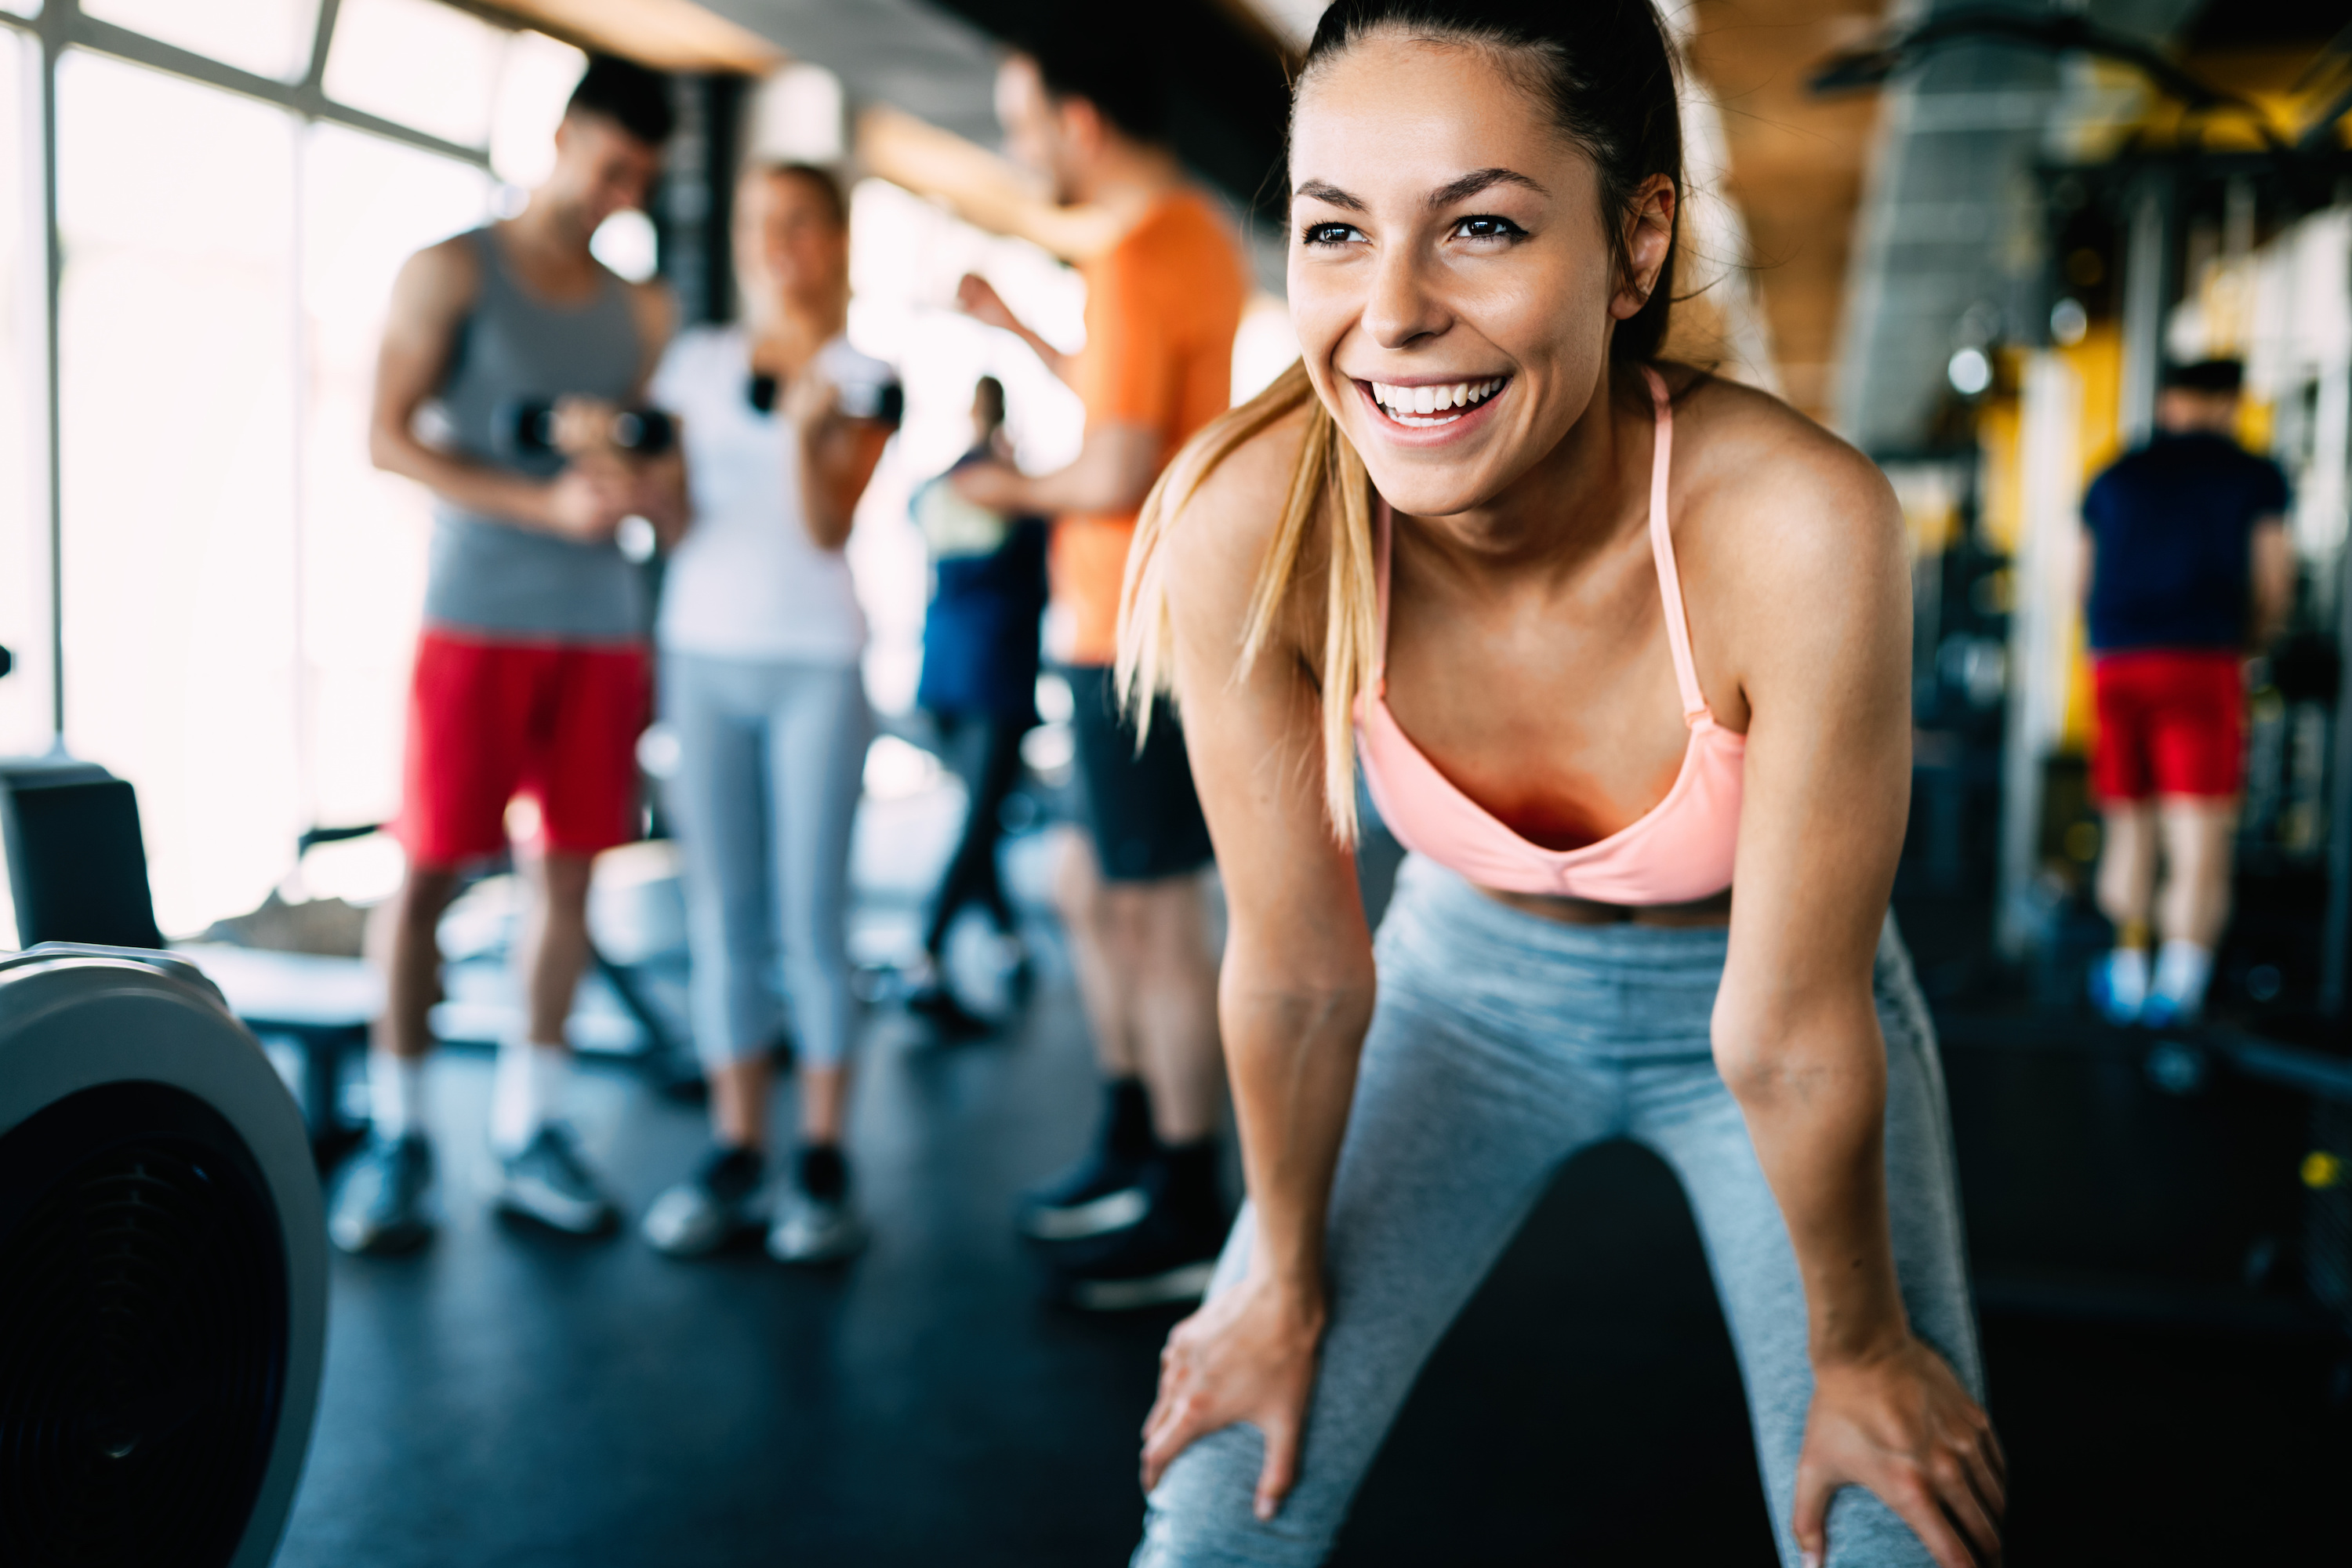 Close up image of smiling attractive fit woman in gym